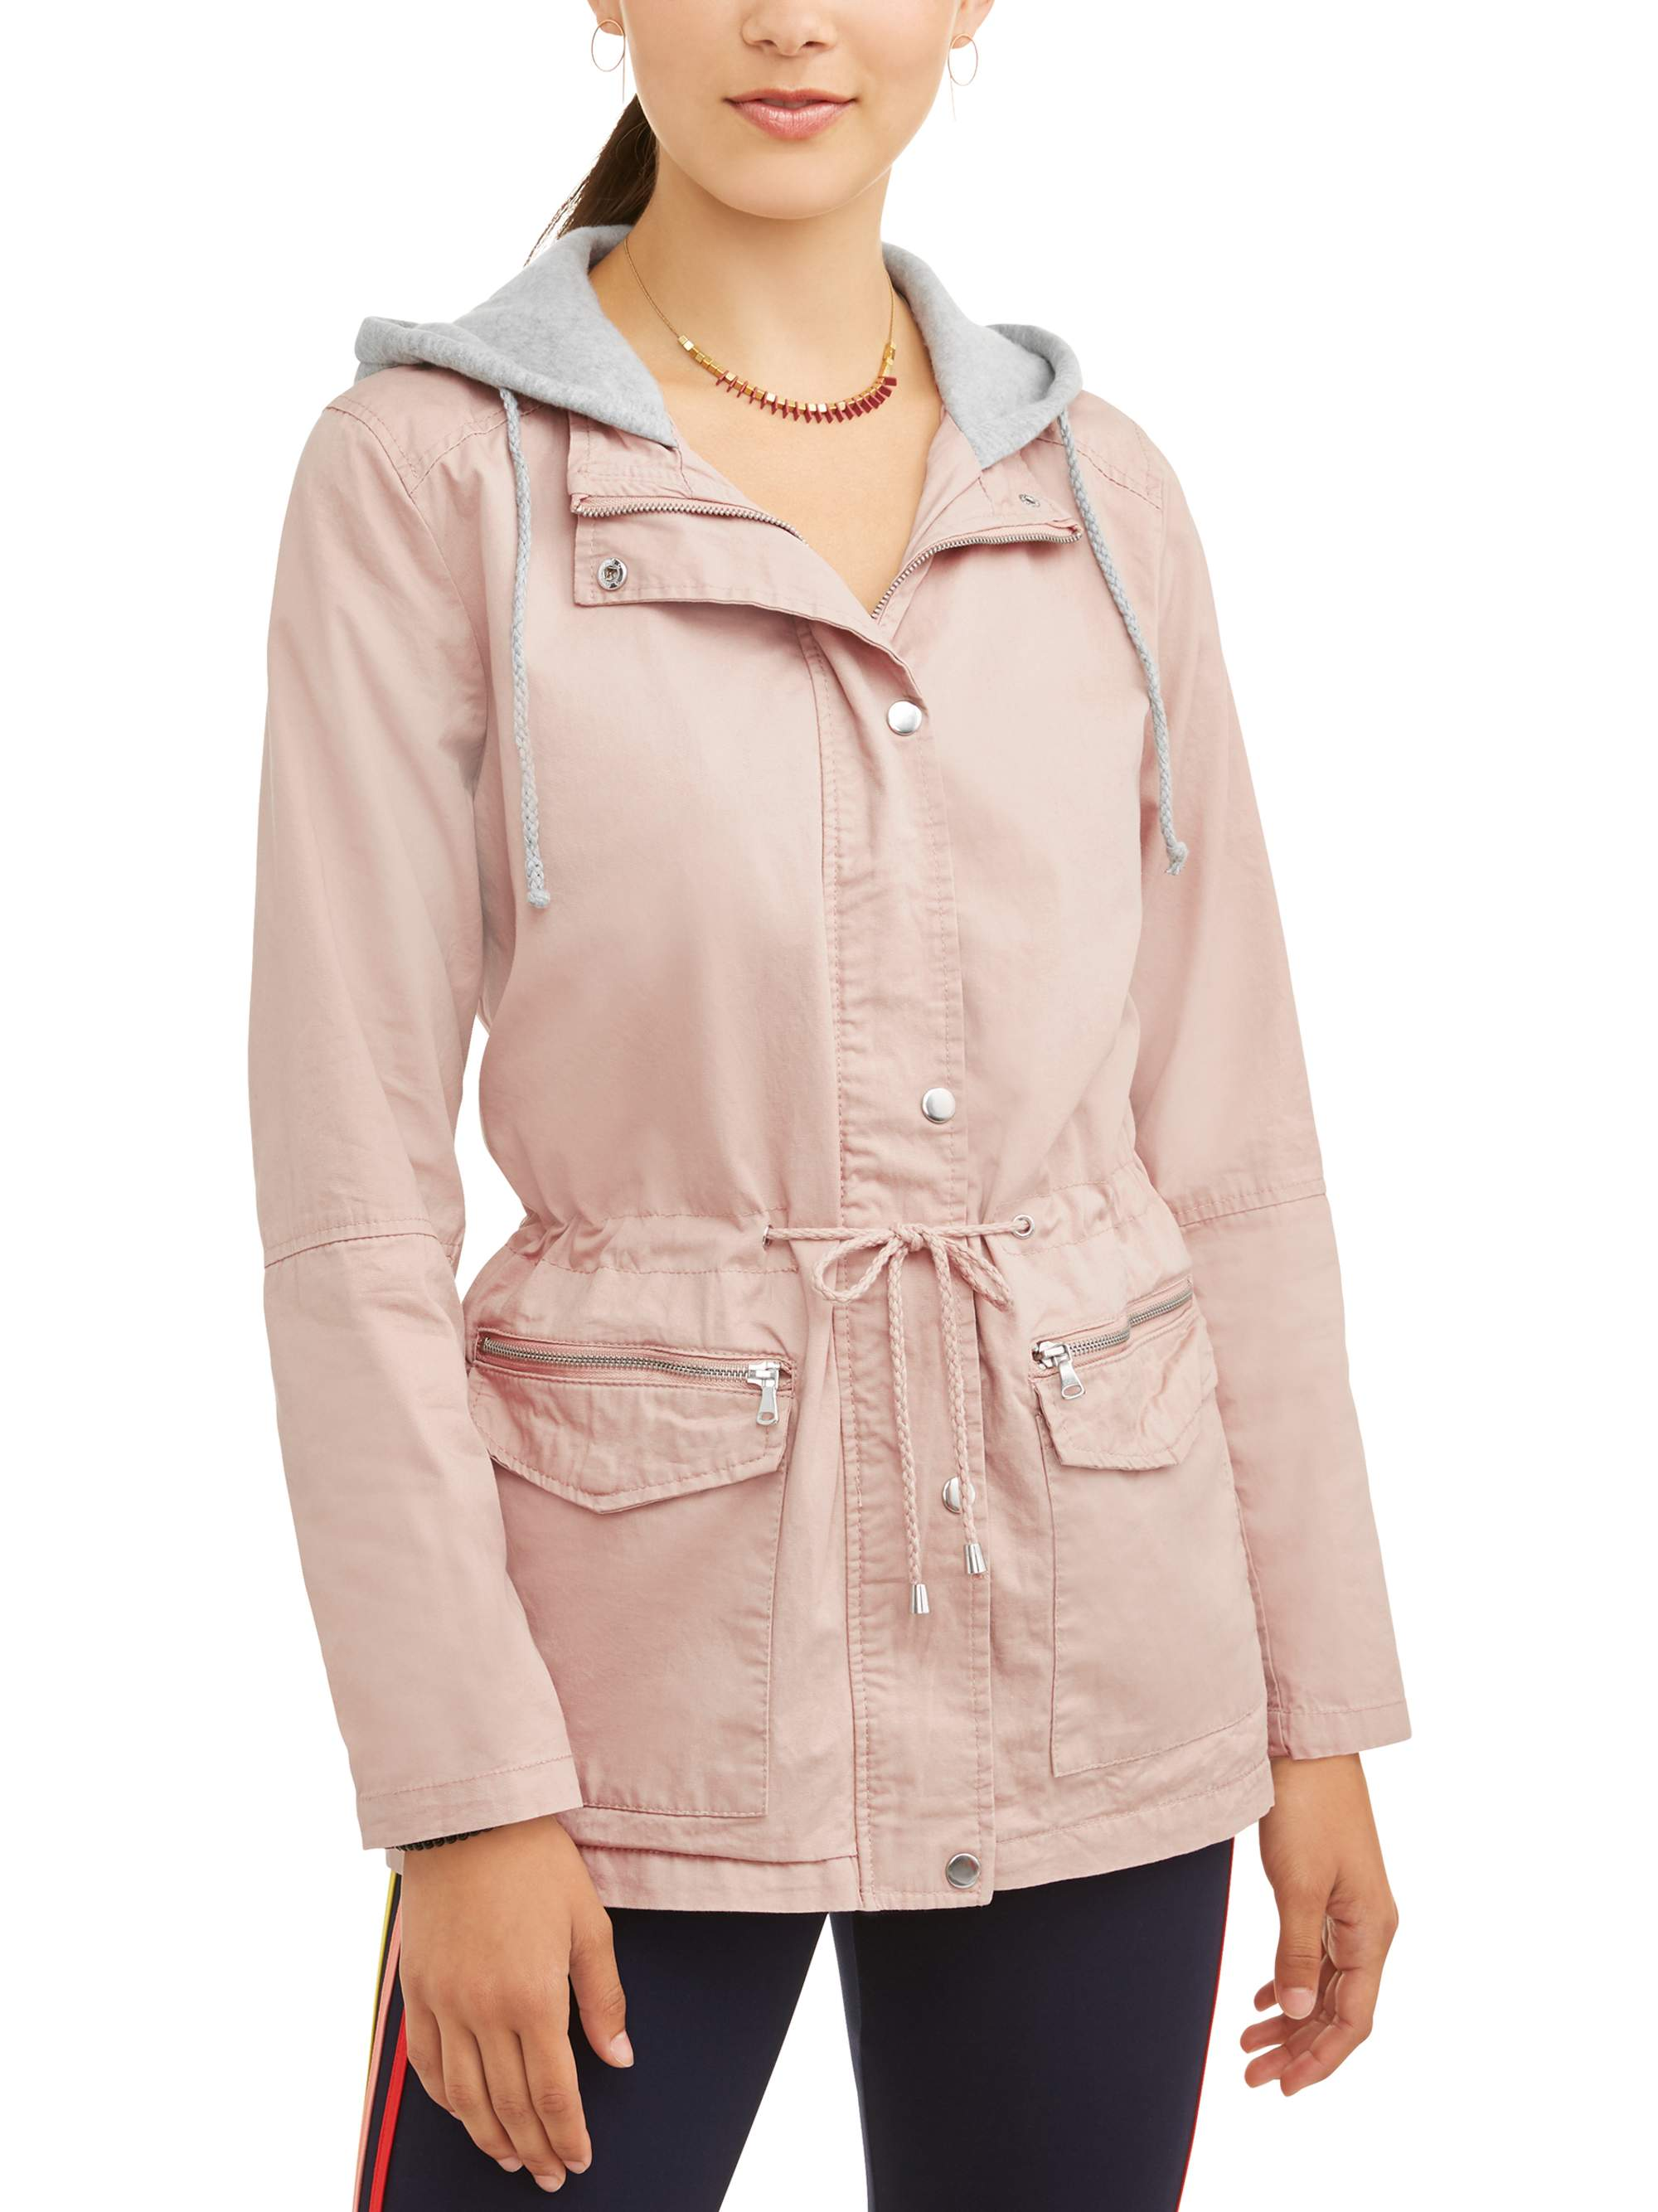 Juniors' Zip Up Anorak Jacket with Sweatshirt Hoodie 2fer